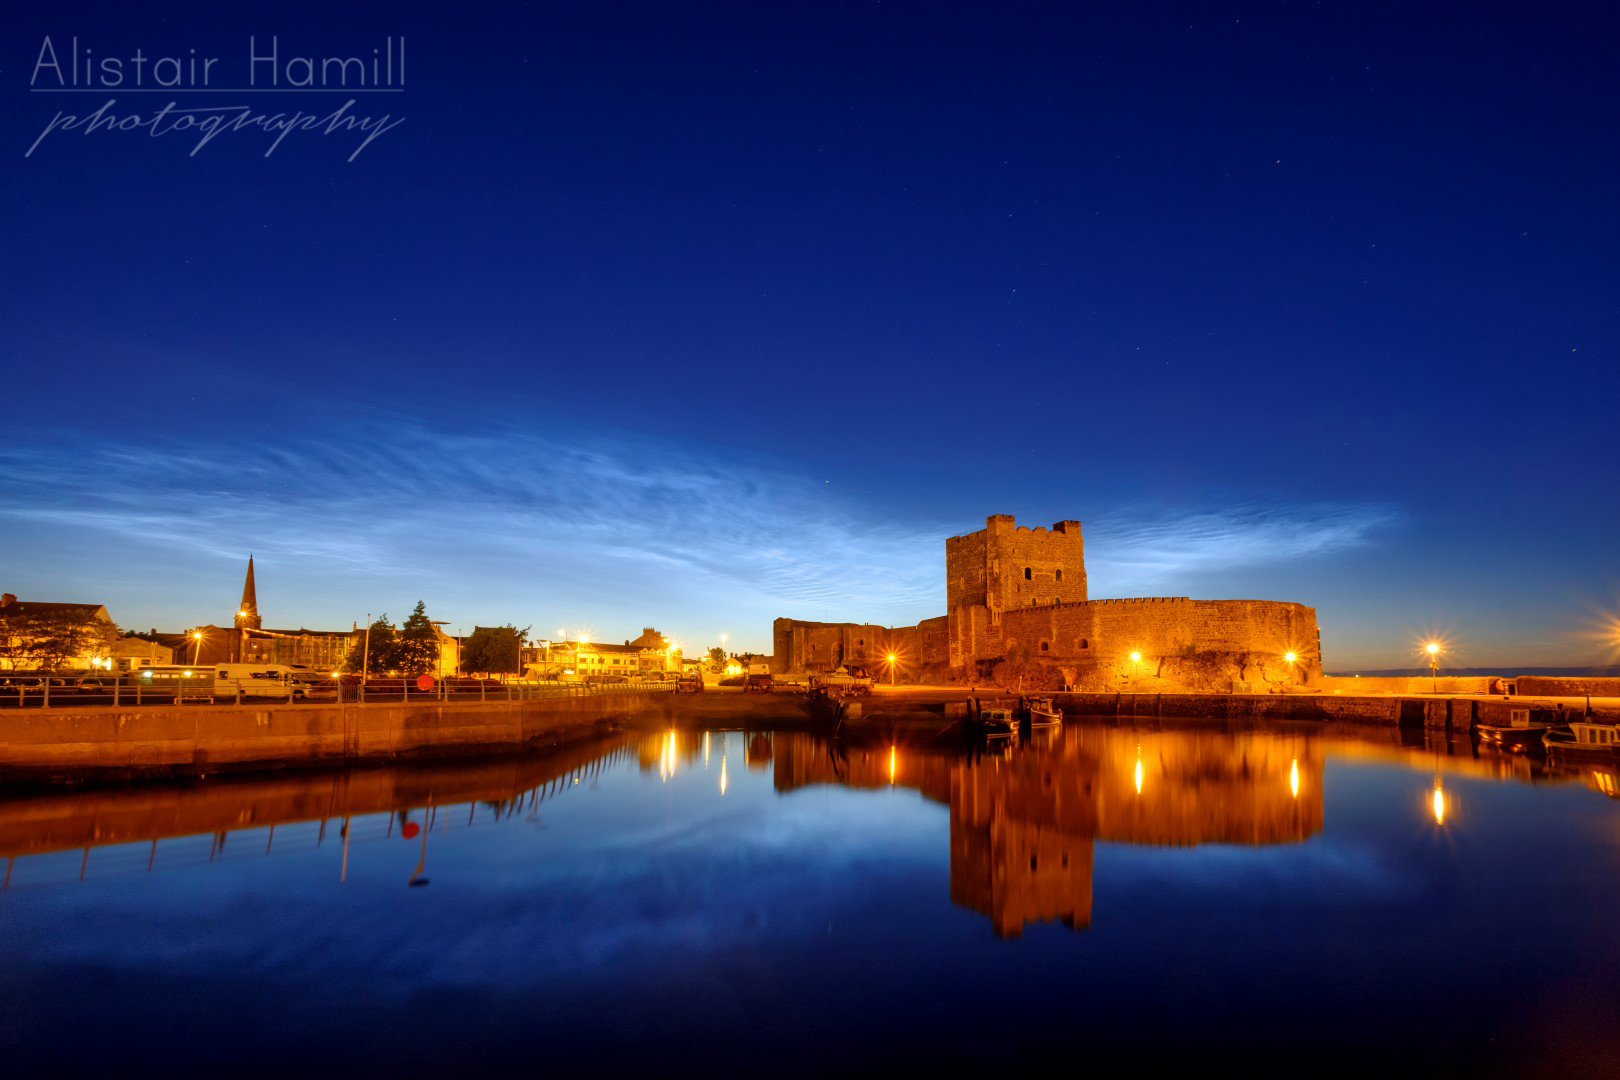 Gravity waves causing the distinctive ripples of the noctilucent clouds above Carrick Castle.